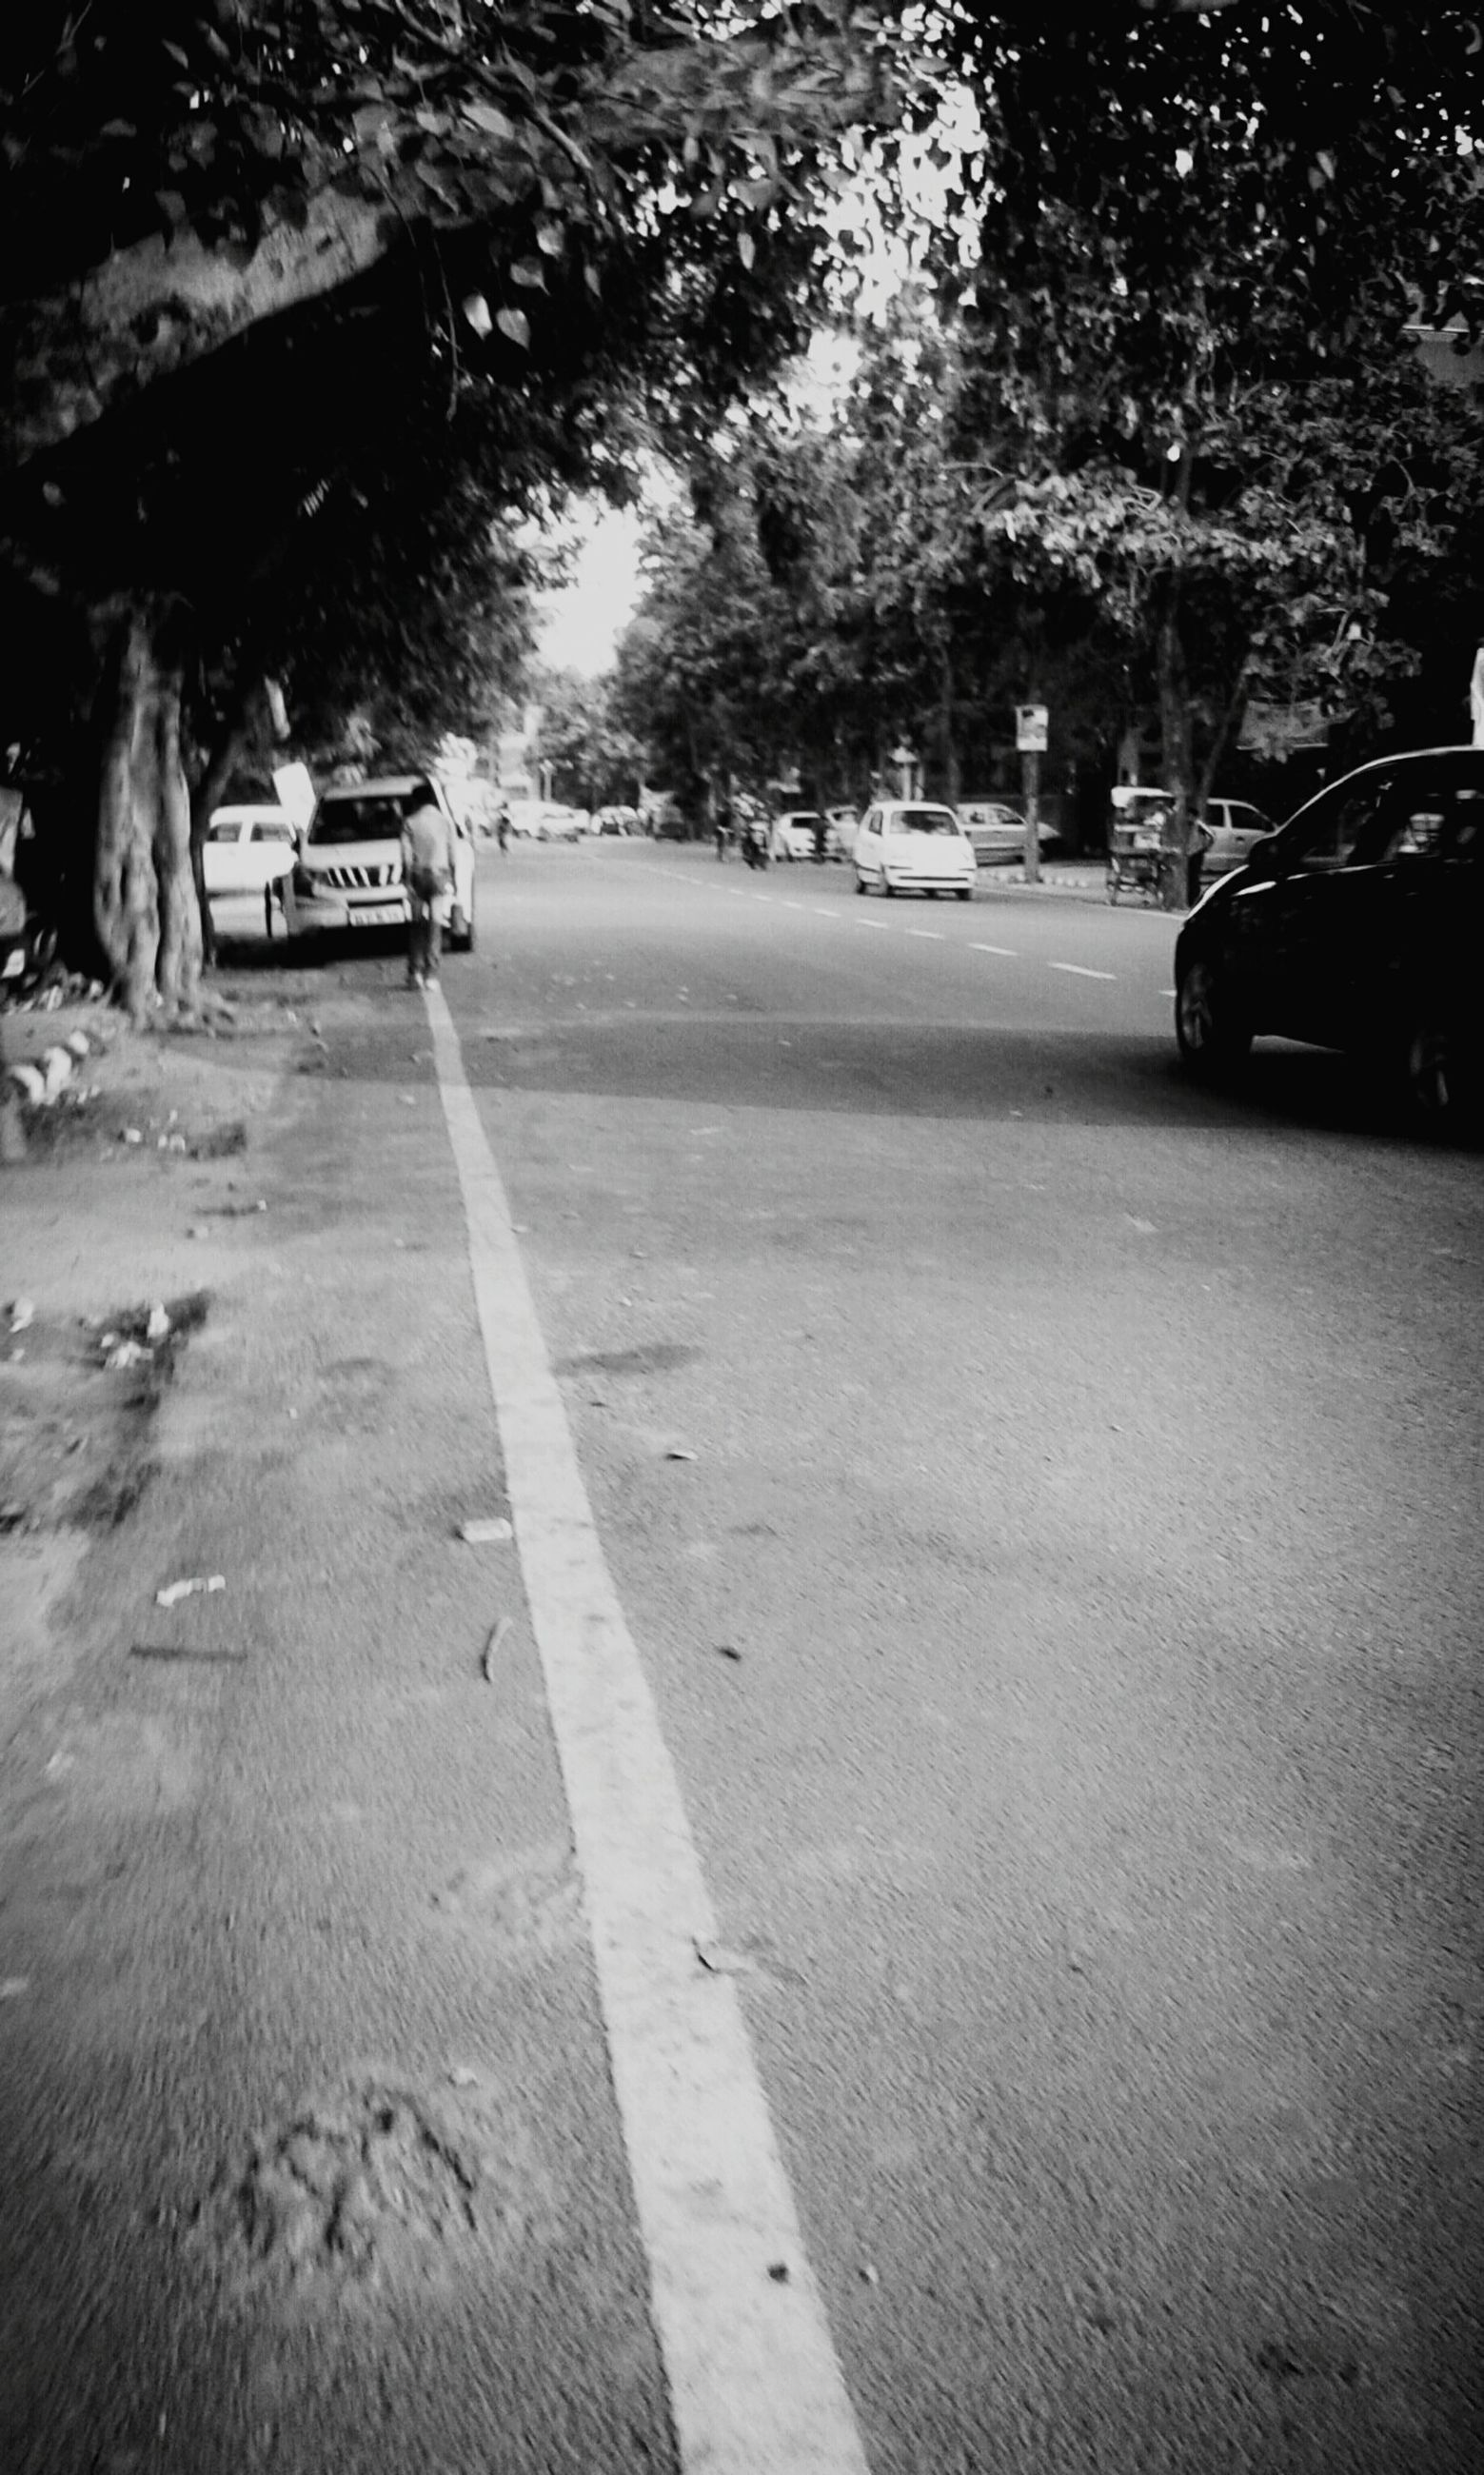 transportation, land vehicle, car, street, mode of transport, road, tree, road marking, the way forward, incidental people, sunlight, outdoors, shadow, on the move, travel, asphalt, day, city street, city, parking